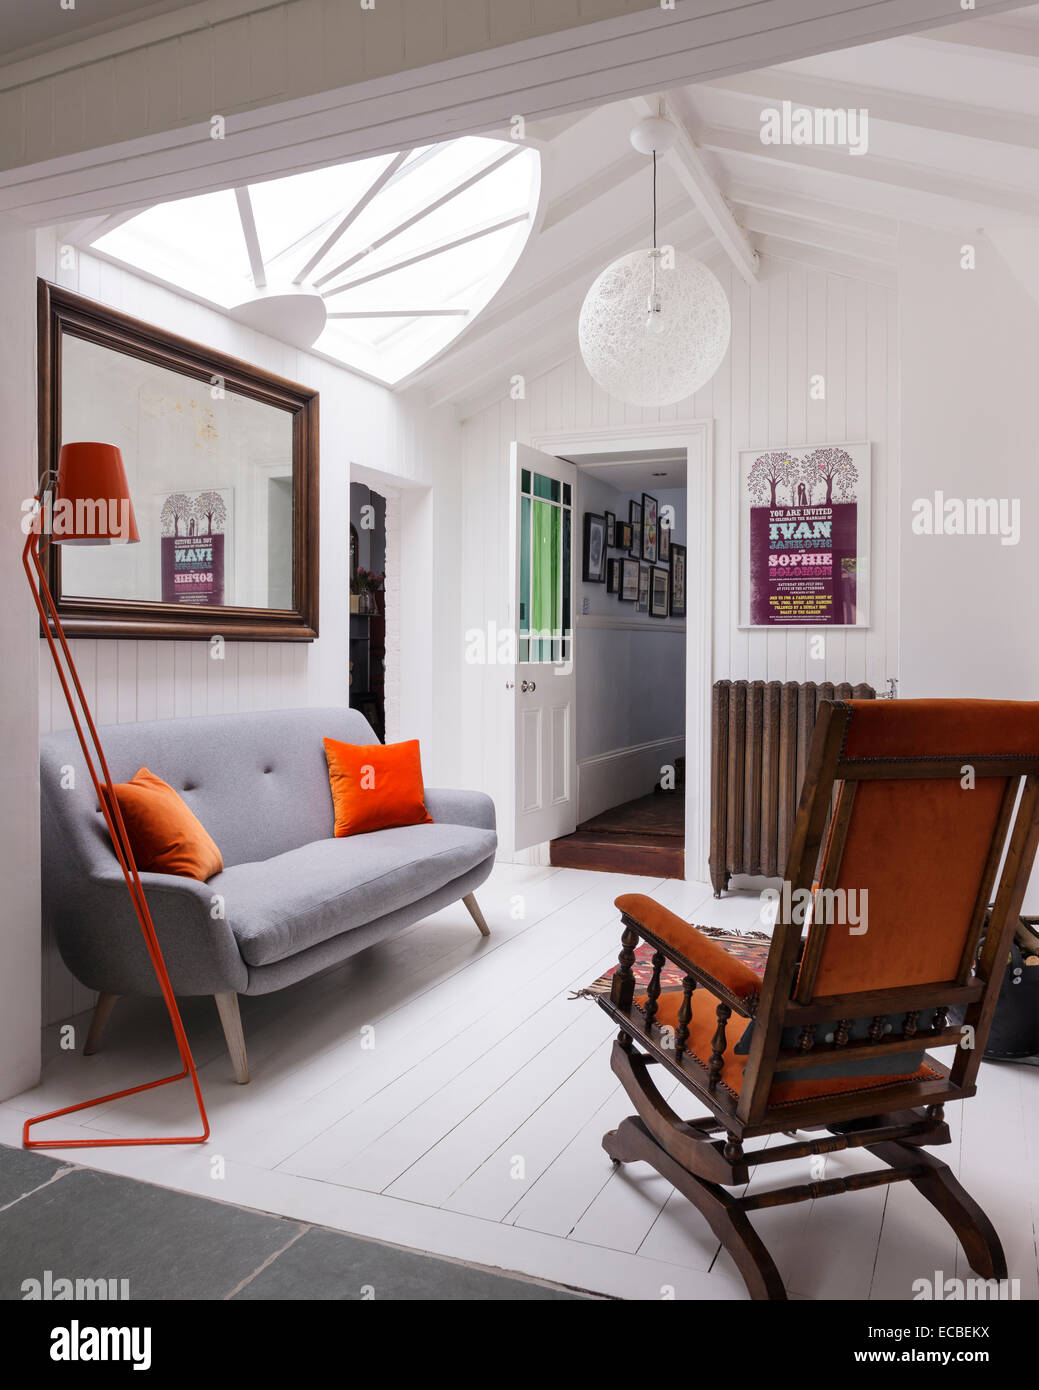 Grey felt sofa from Loaf with orange velvet cushions on landing area with orange floor lamp and large fan light Stock Photo